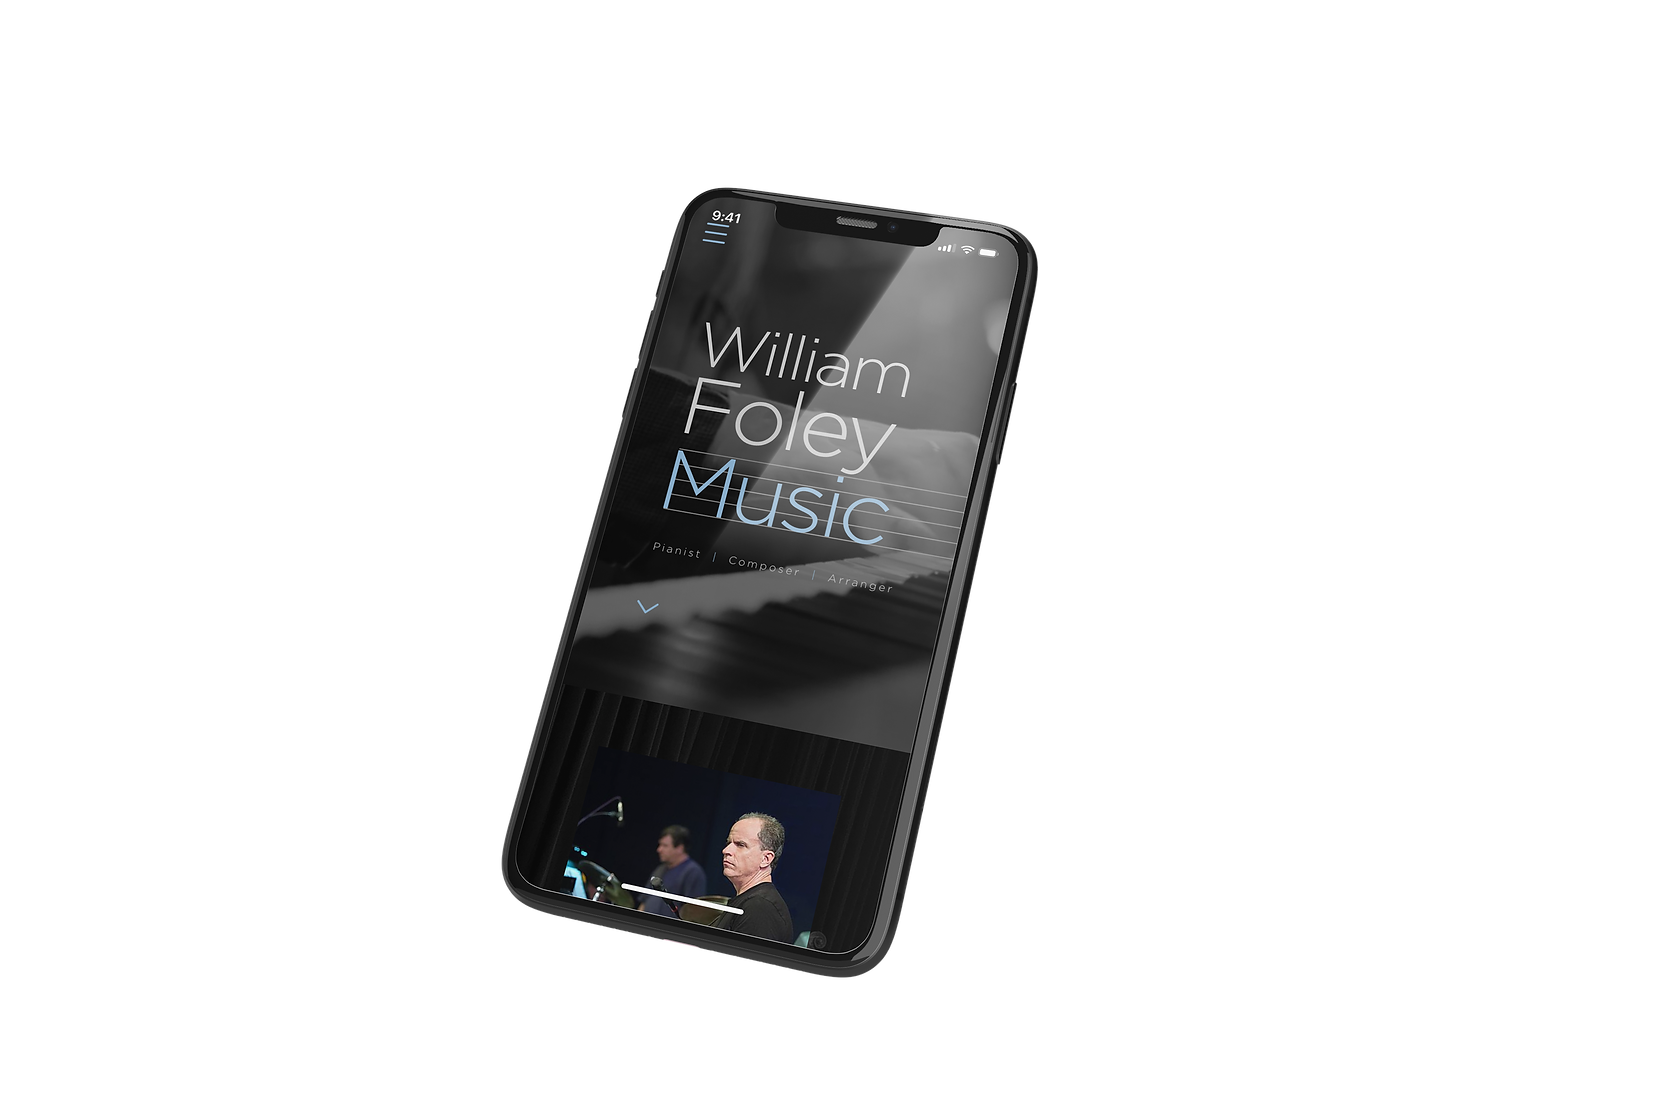 Foley Music iPhone.png